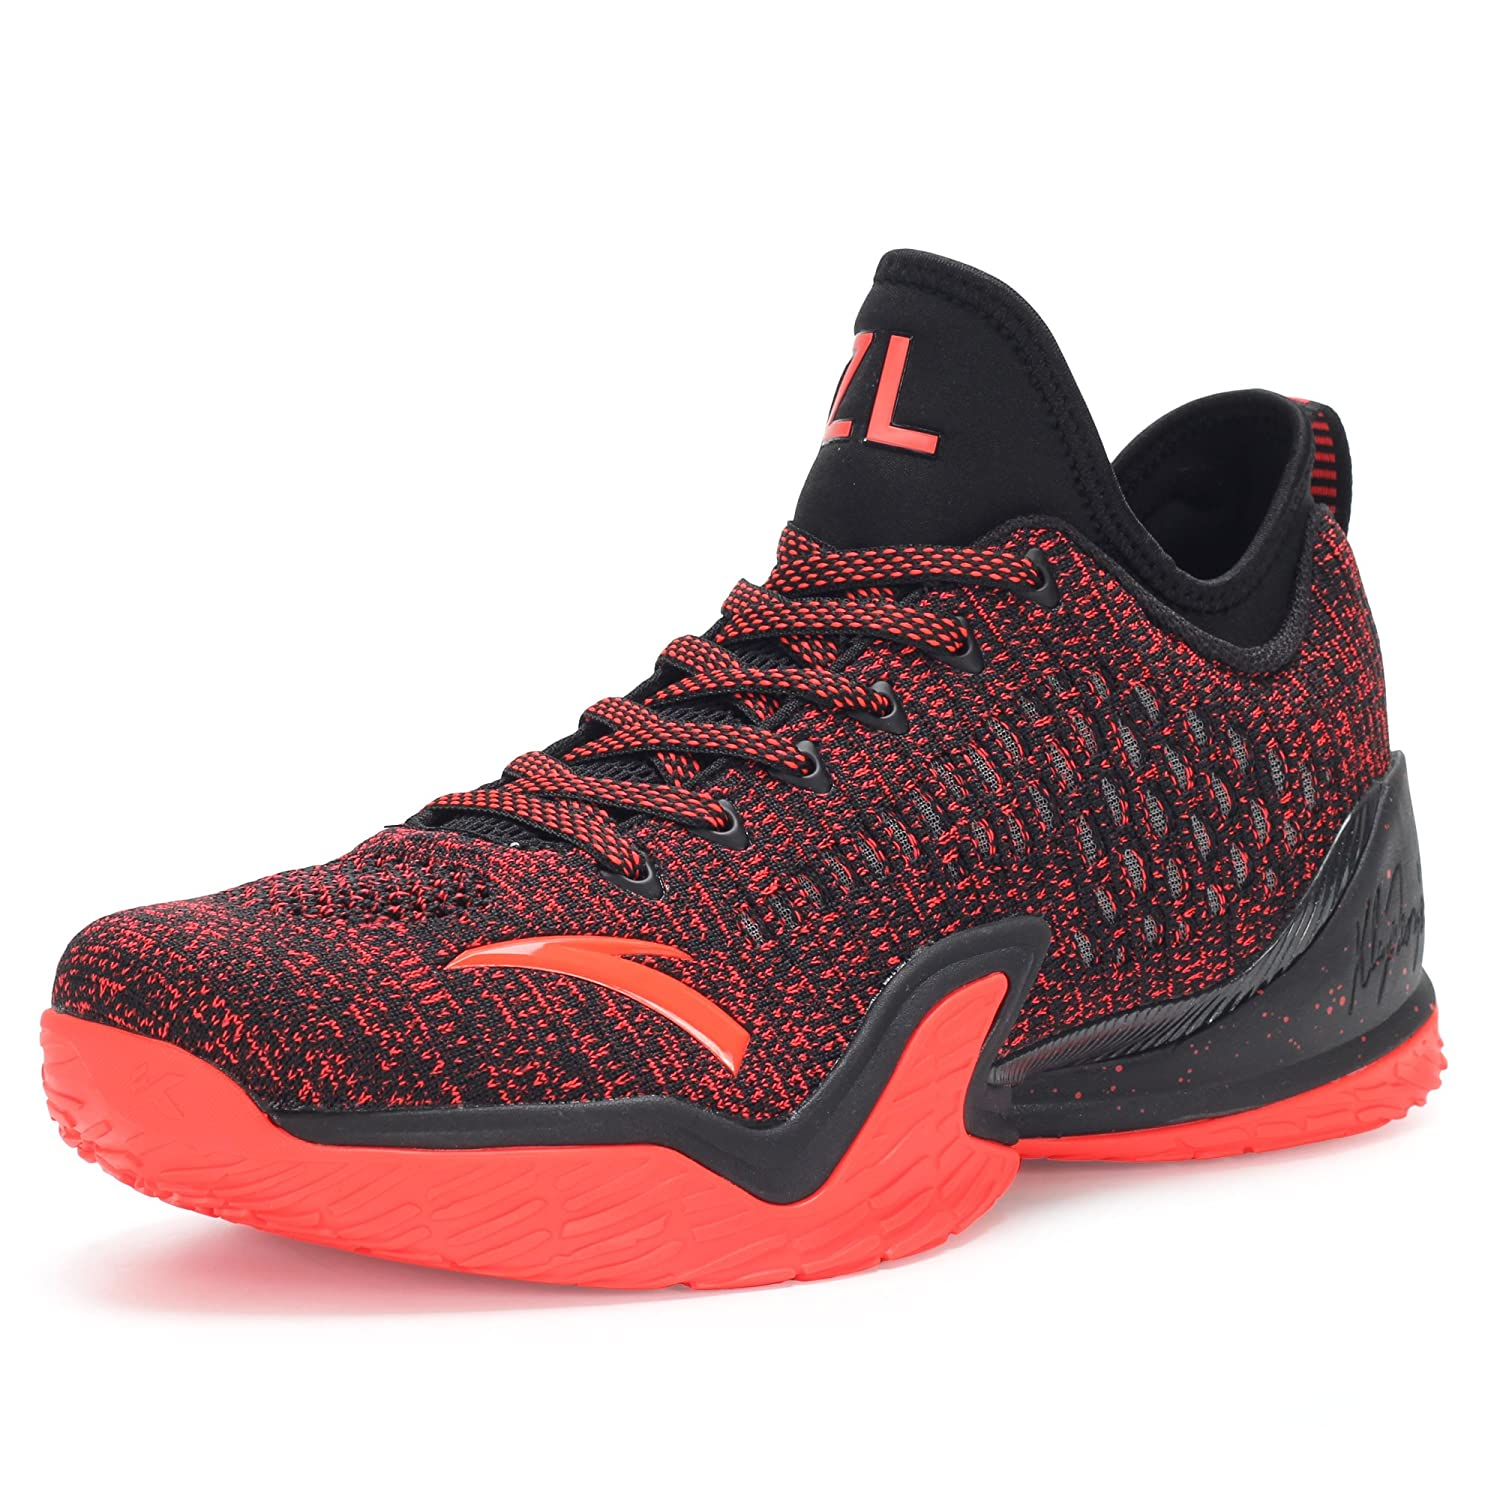 ANTA メンズ KT3 PLAYOFFS B07BJZFW3G 9.5 D(M) US Black/D.ruby